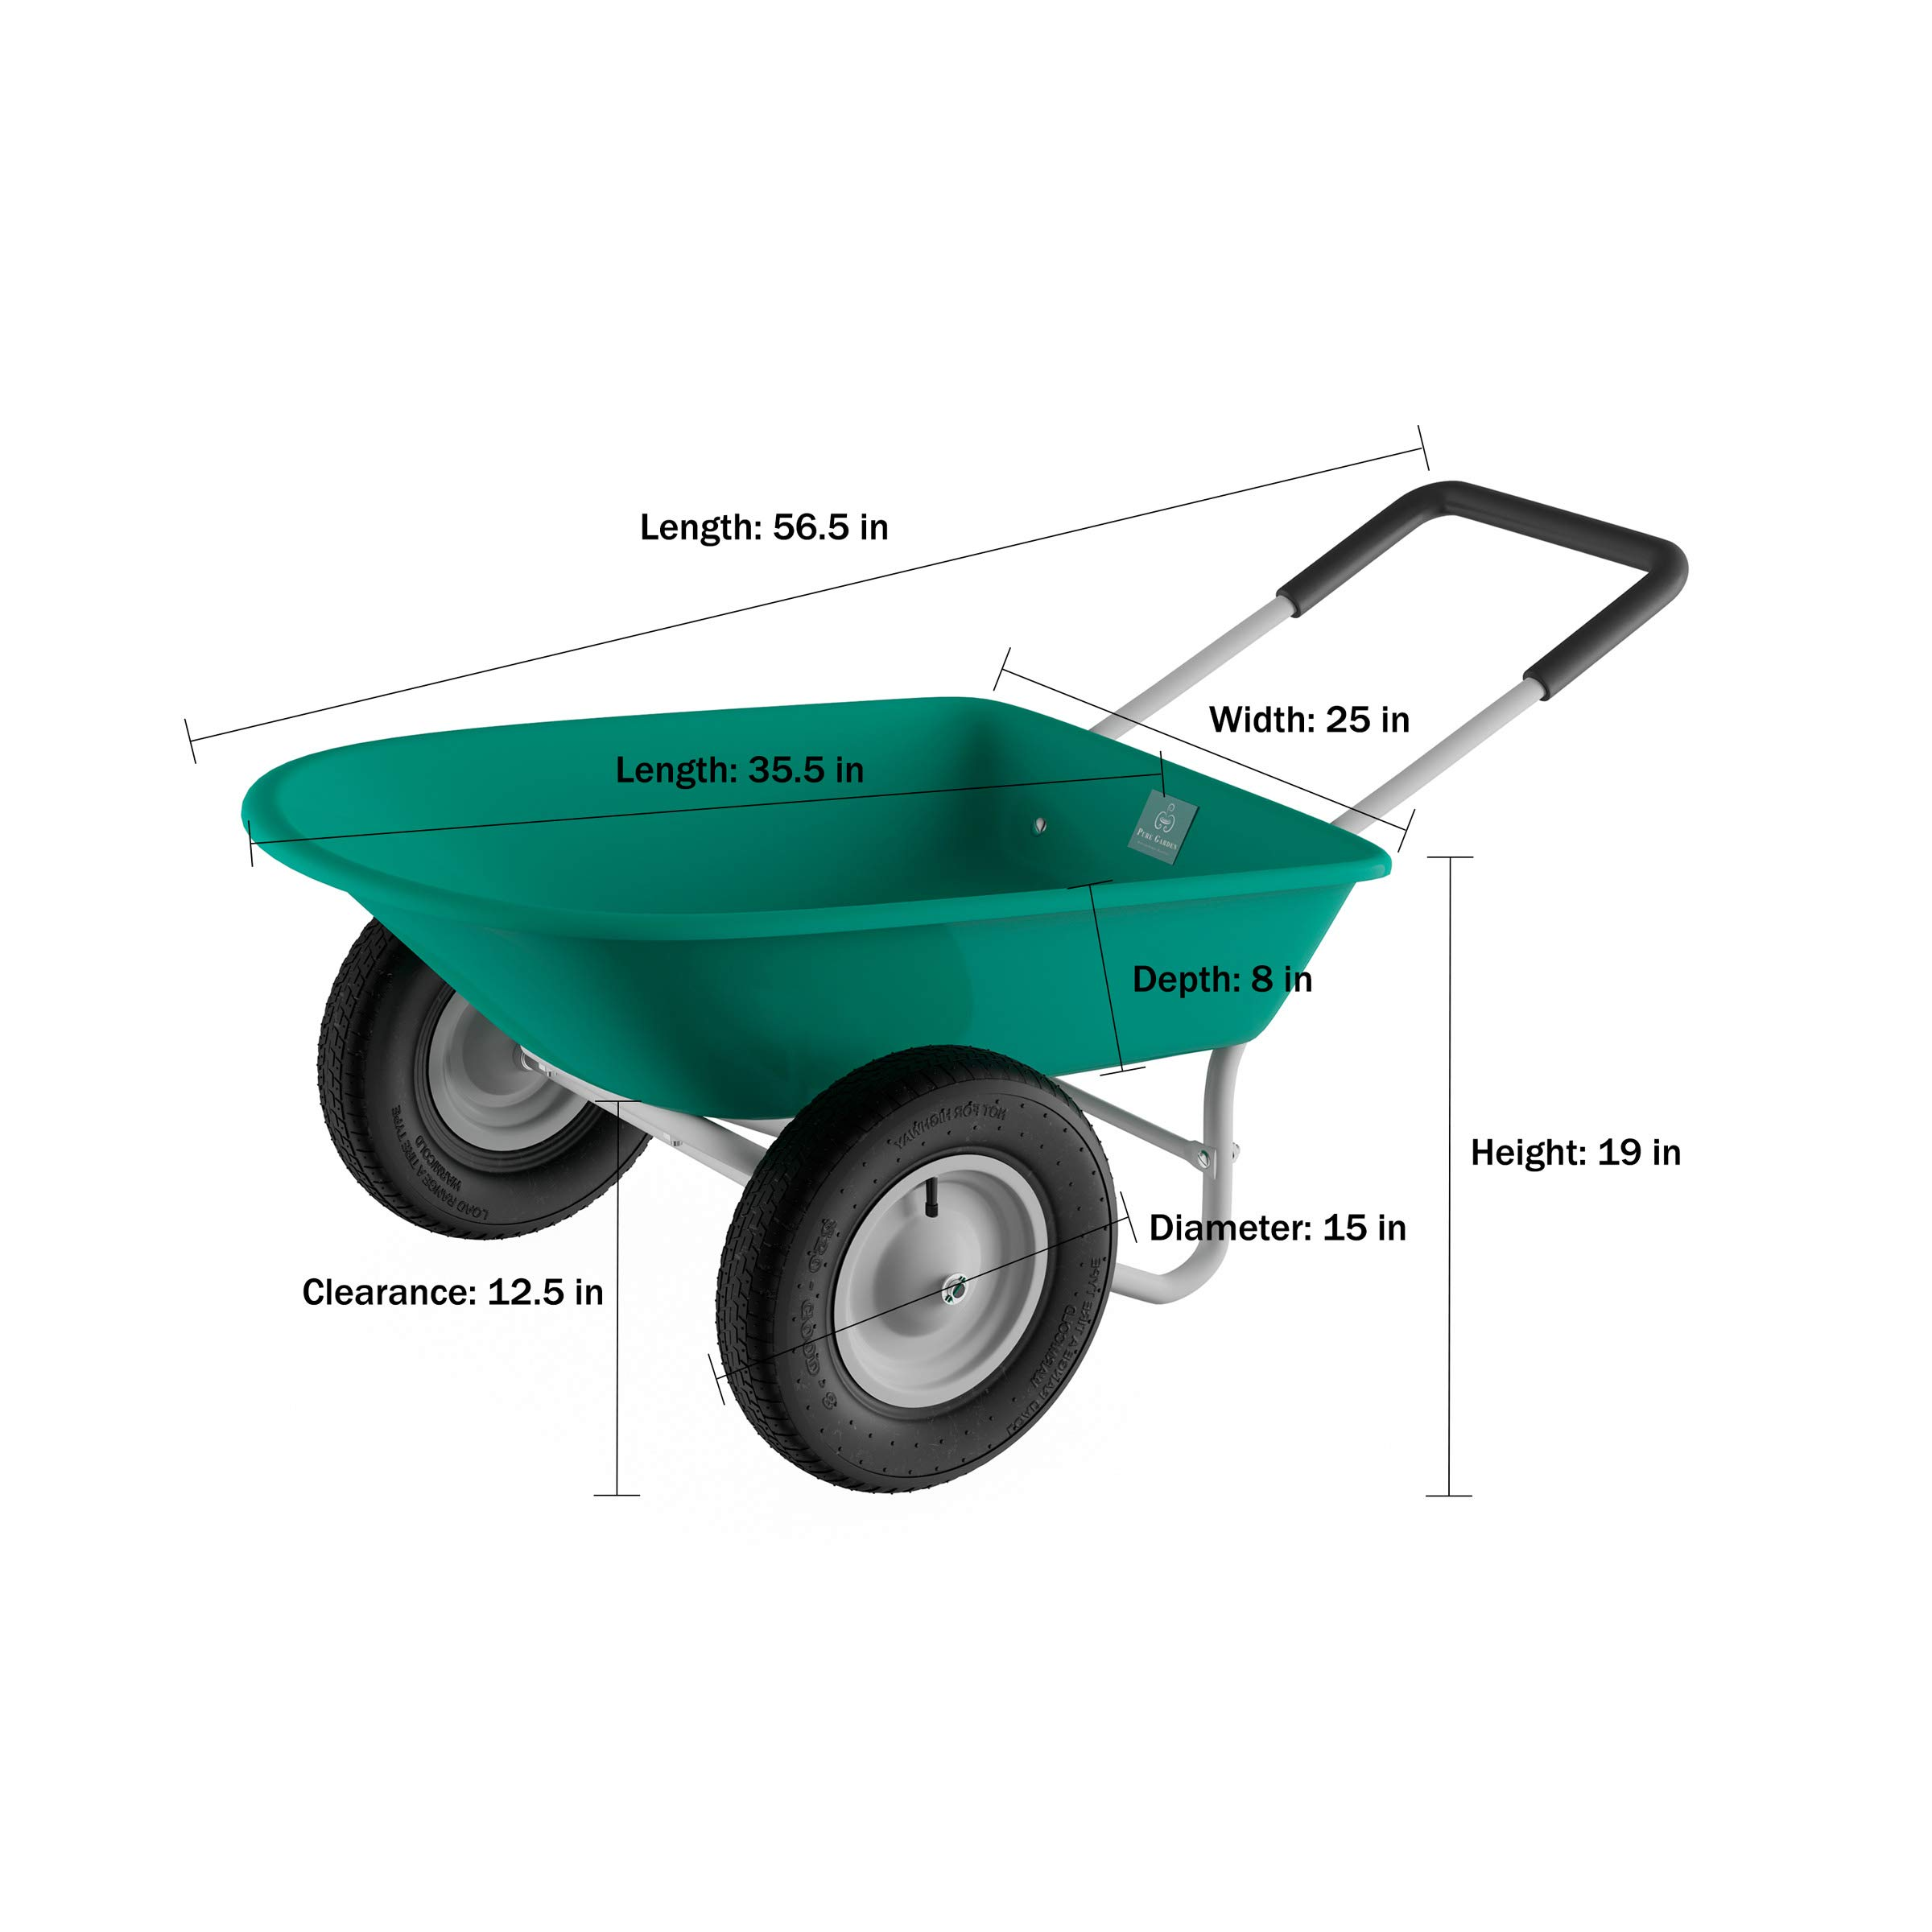 Pure Garden (PURNC) 50-LG1079 Pure 2-Wheeled Garden Wheelbarrow – Large Capacity Rolling Utility Dump Cart for Residential DIY Landscaping, Lawn Care and Remodeling by Pure Garden (PURNC) (Image #2)